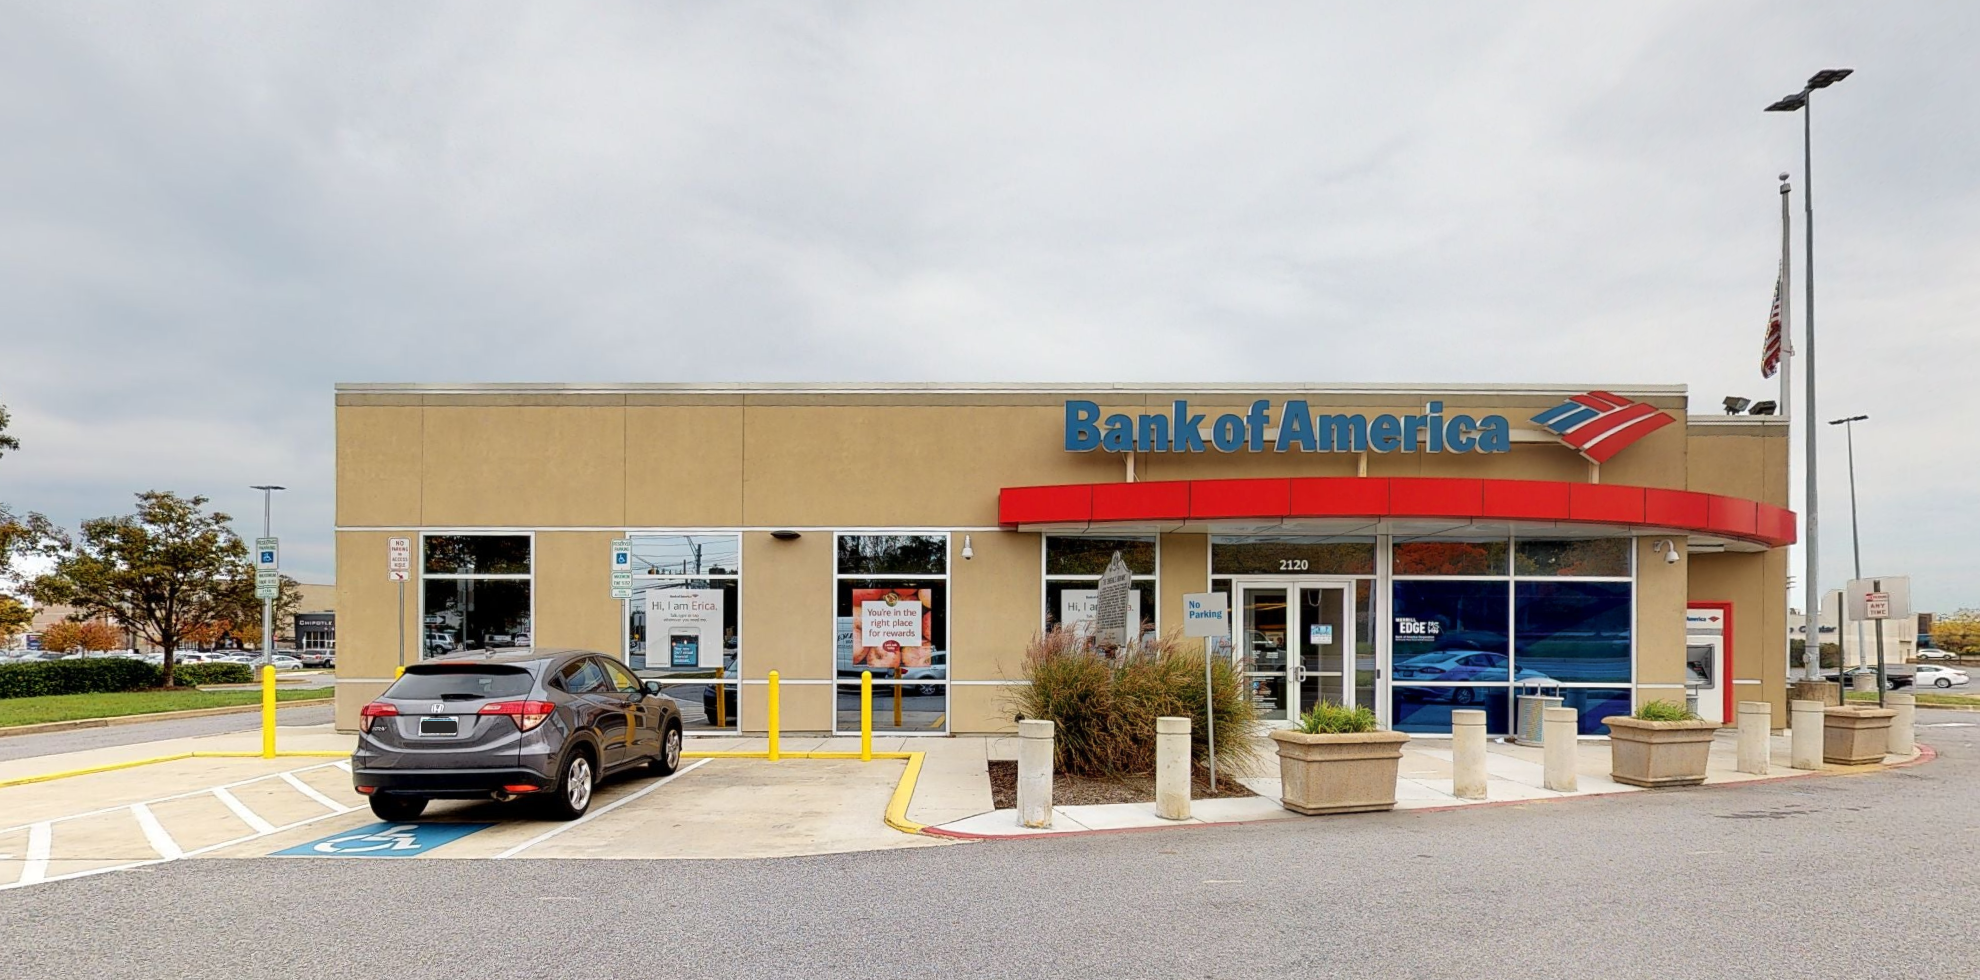 Bank of America financial center with drive-thru ATM | 2120 West St, Annapolis, MD 21401